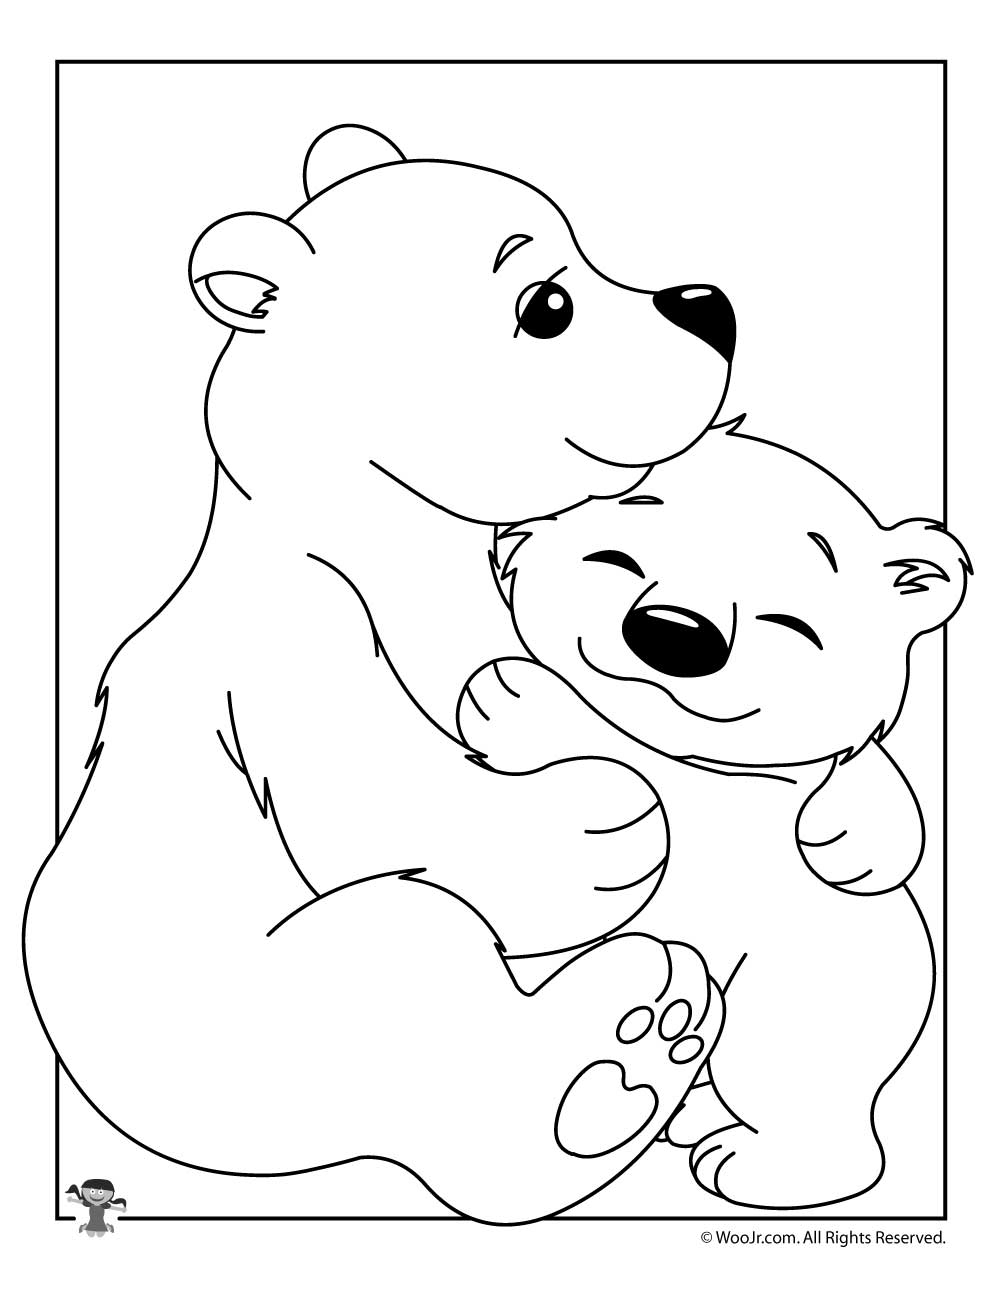 Baby Polar Bear Coloring Sheet Woo Jr Kids Activities